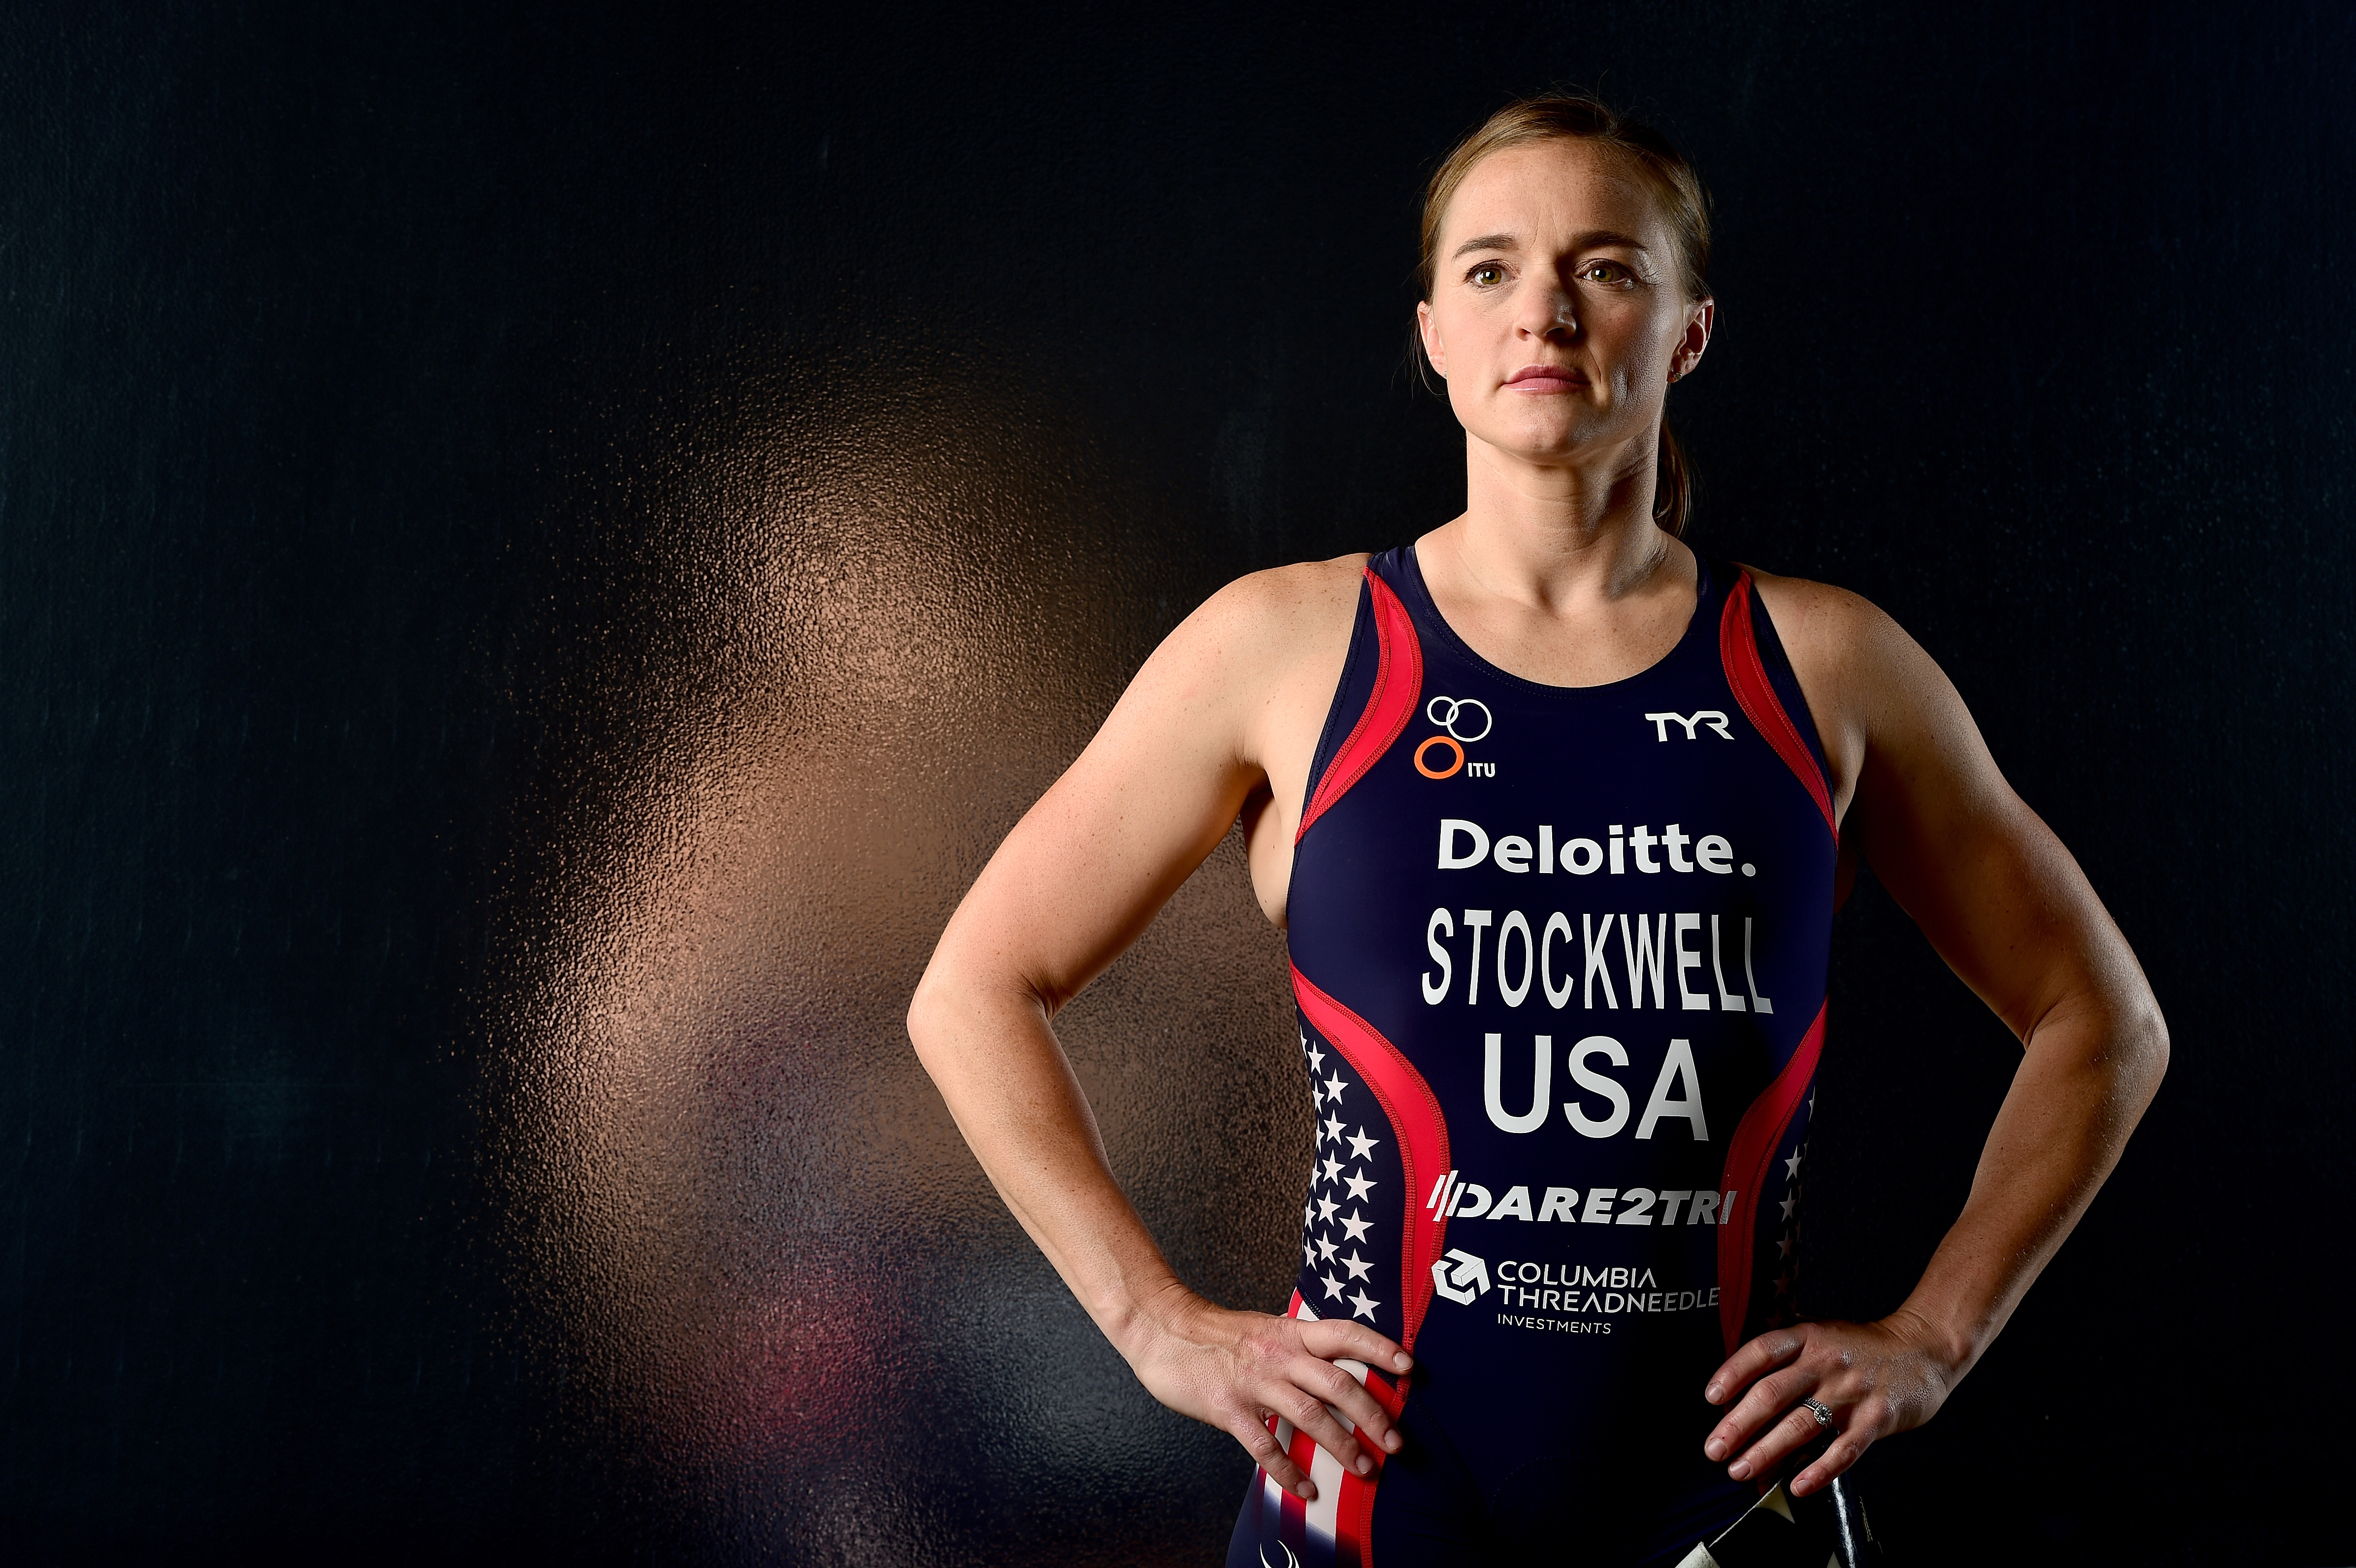 Paratriathlete Melissa Stockwell poses for a portrait at the USOC Rio Olympics Shoot at Quixote Studios on November 19, 2015 in Los Angeles, California.